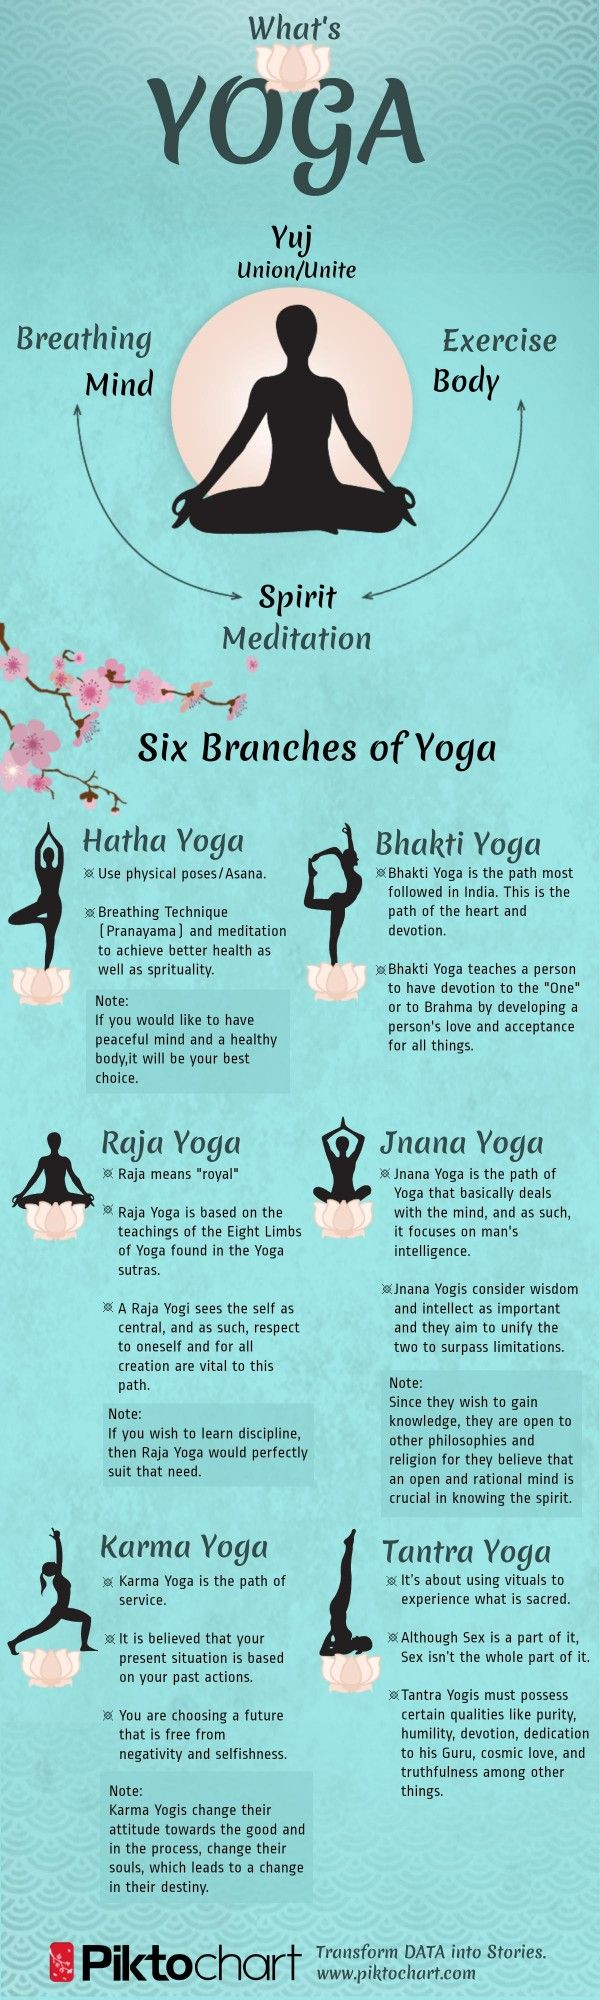 A simple description of the main types/branches of yoga that you could immerse yourself in. #Yoga #TypesOfYoga